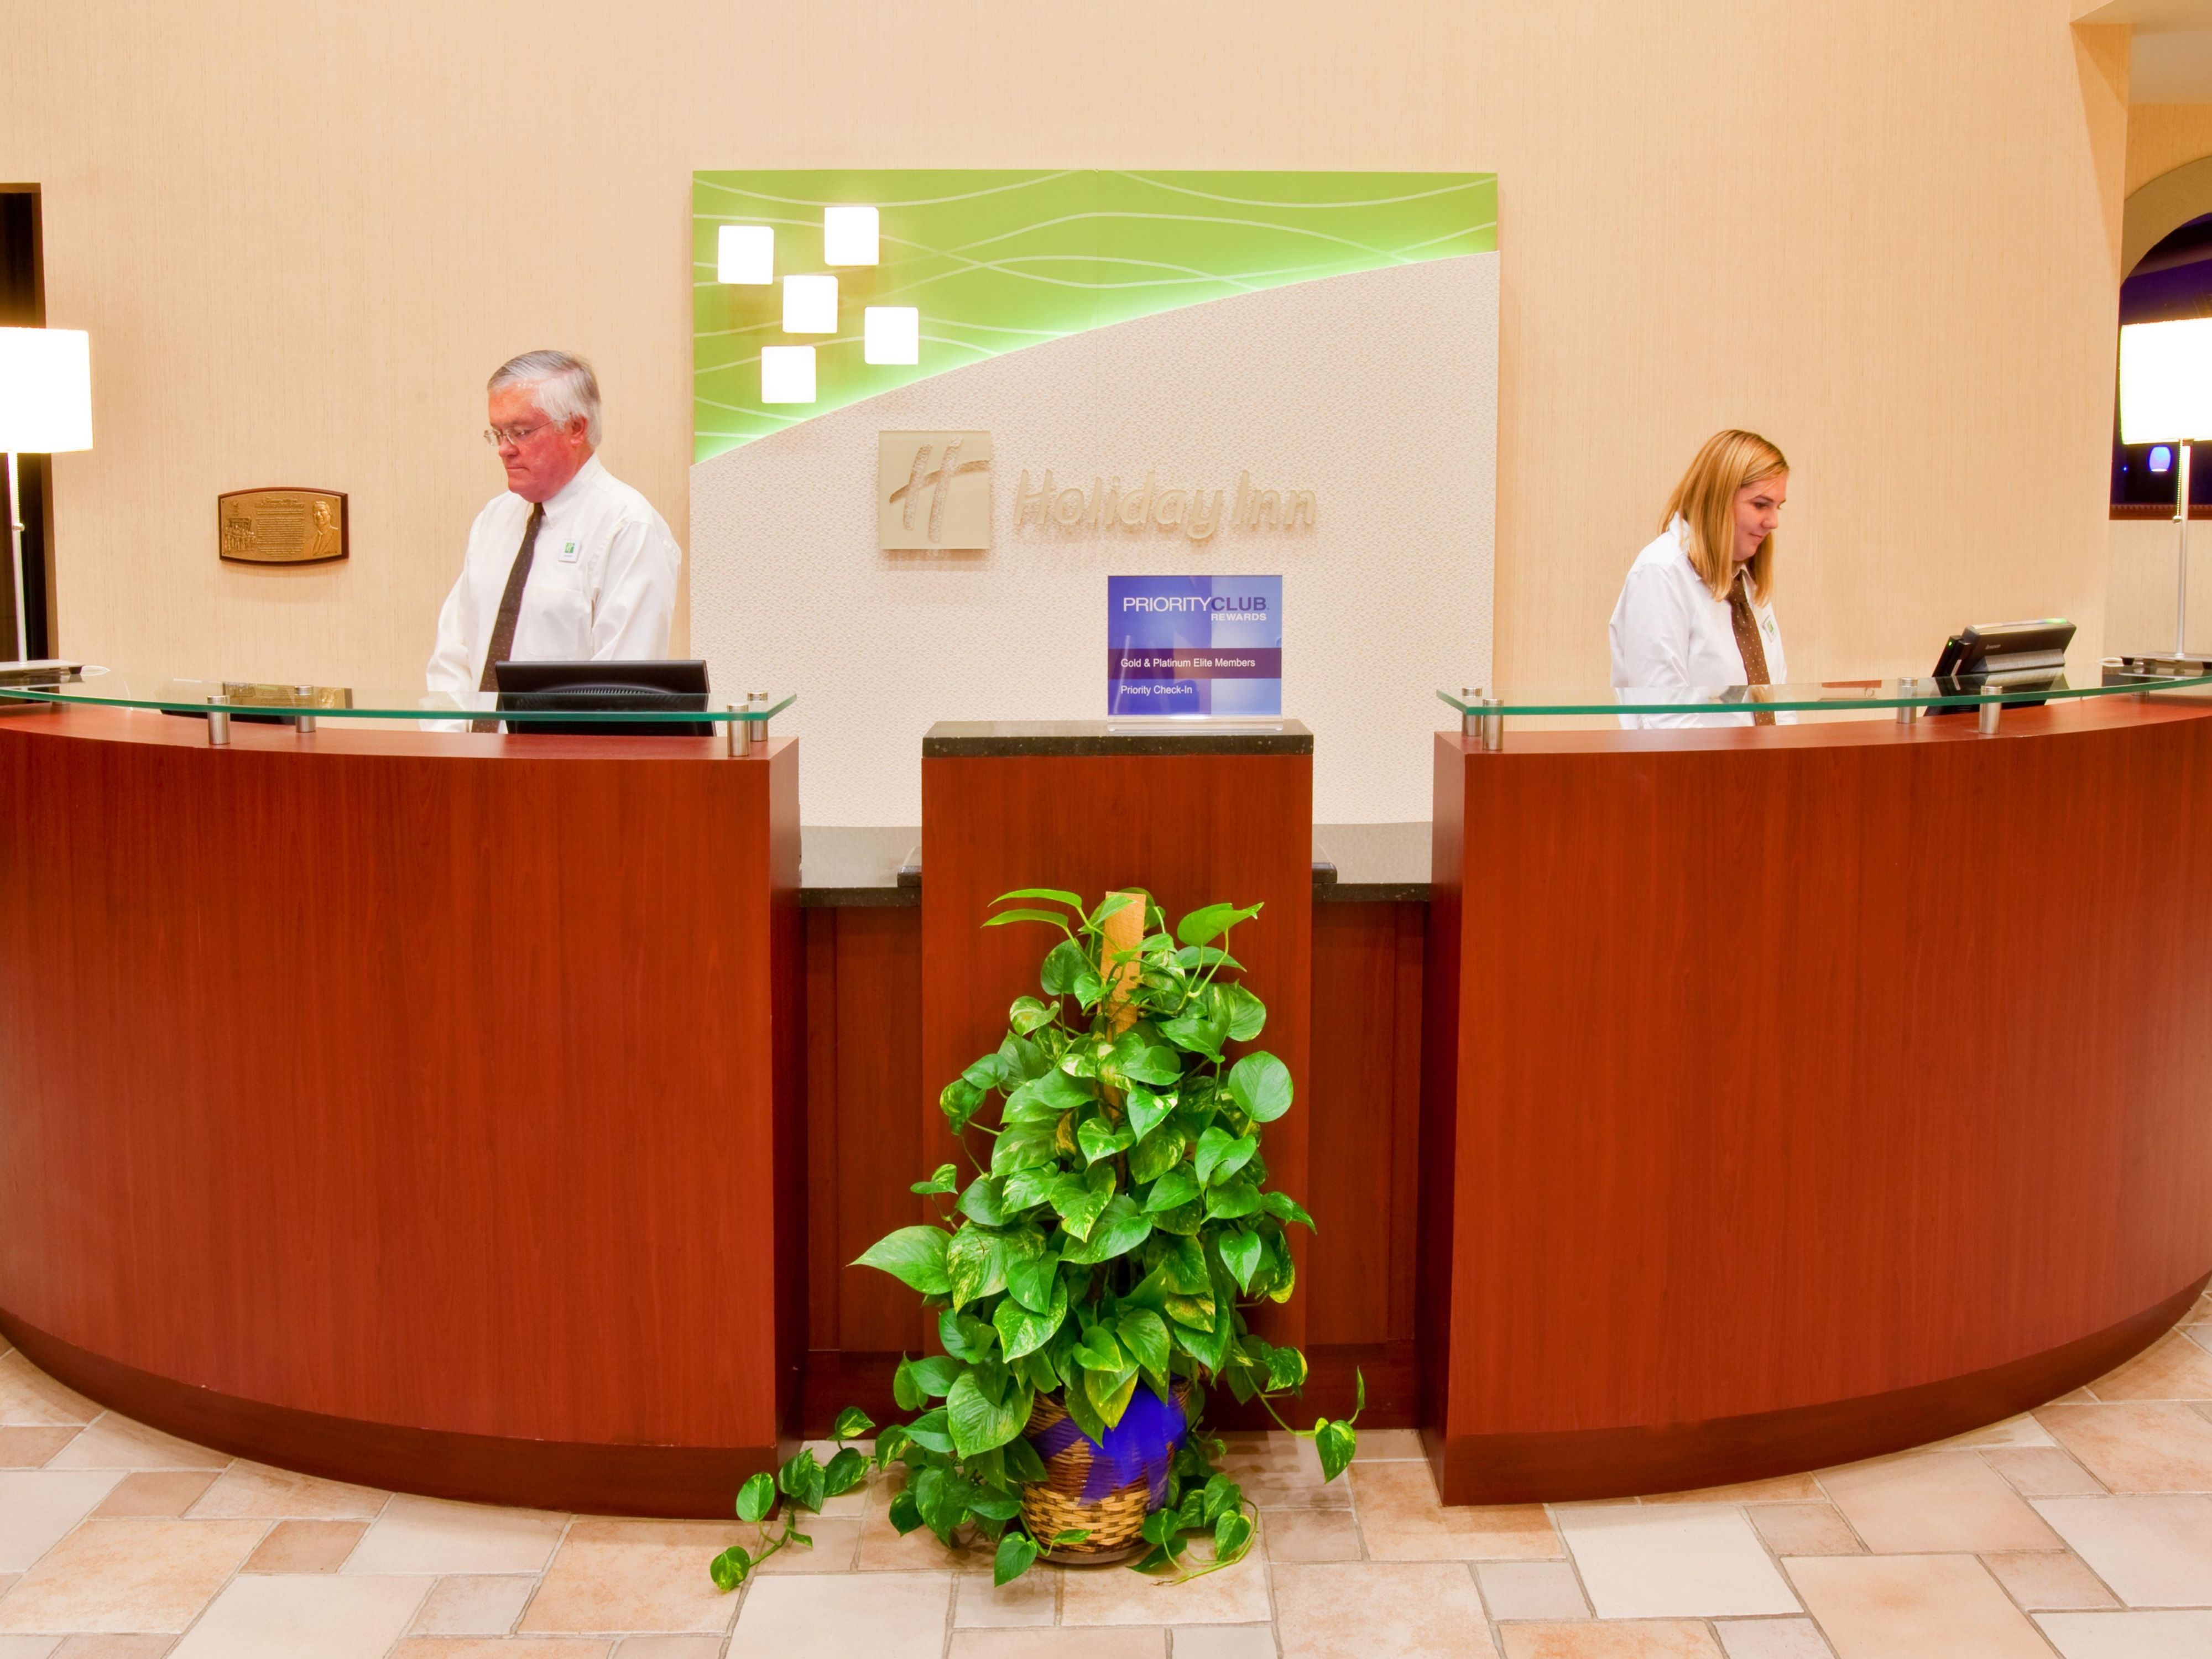 Our helpful front desk staff to assist you.